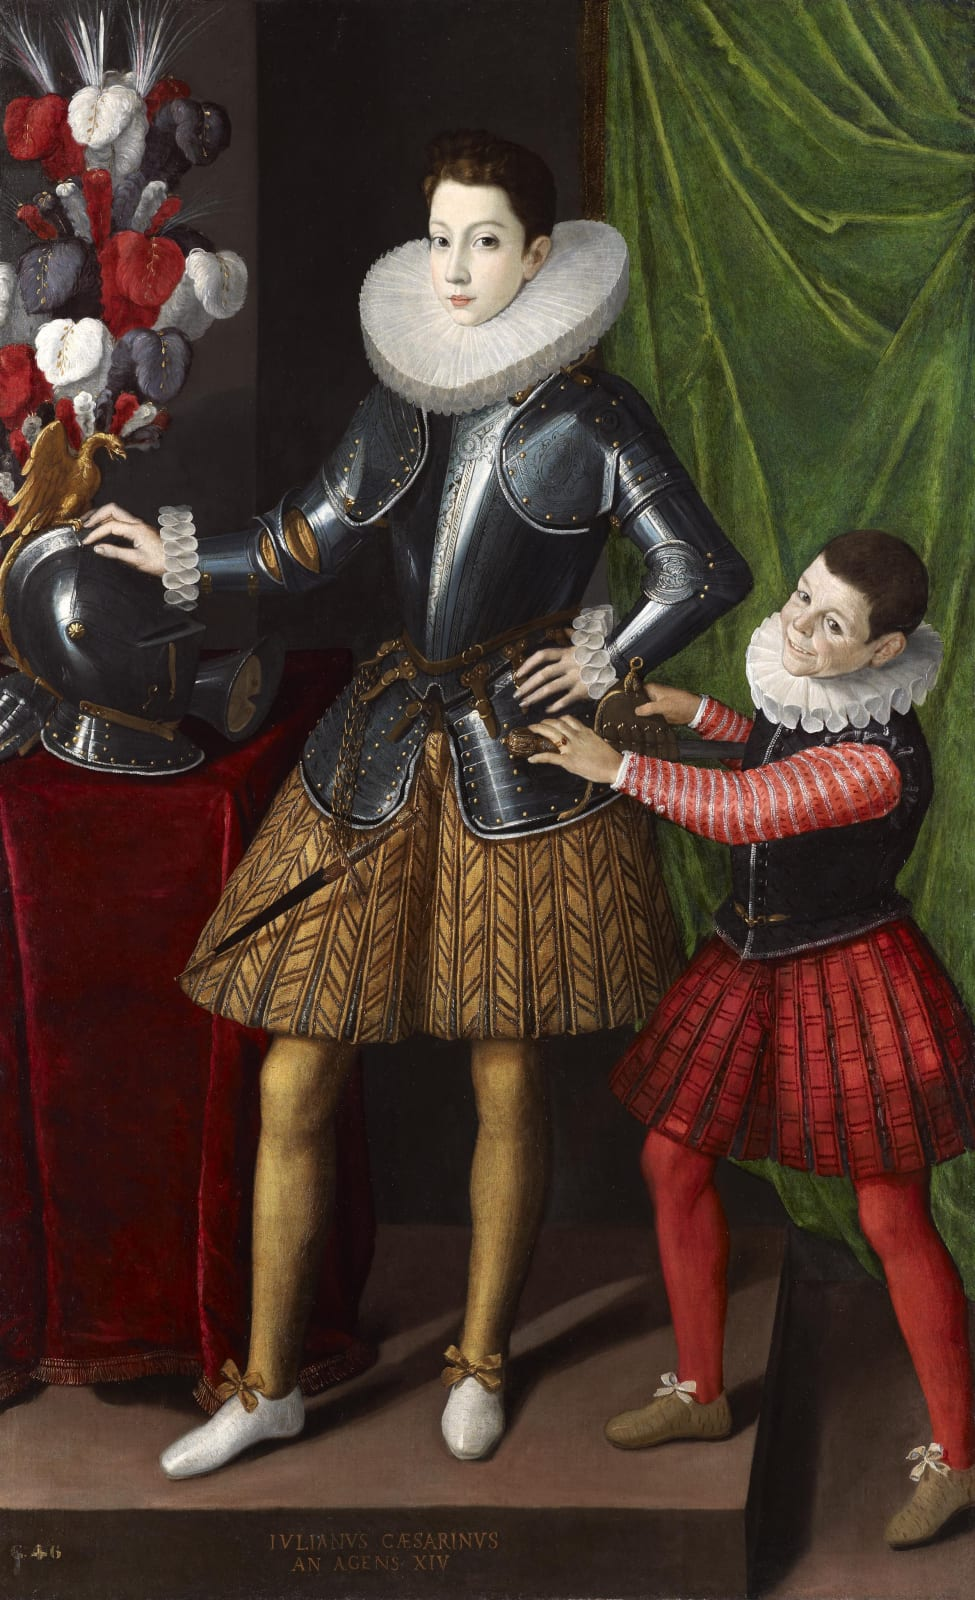 Giuliano II Cesarini (1572 – 1613), with an attendant midget